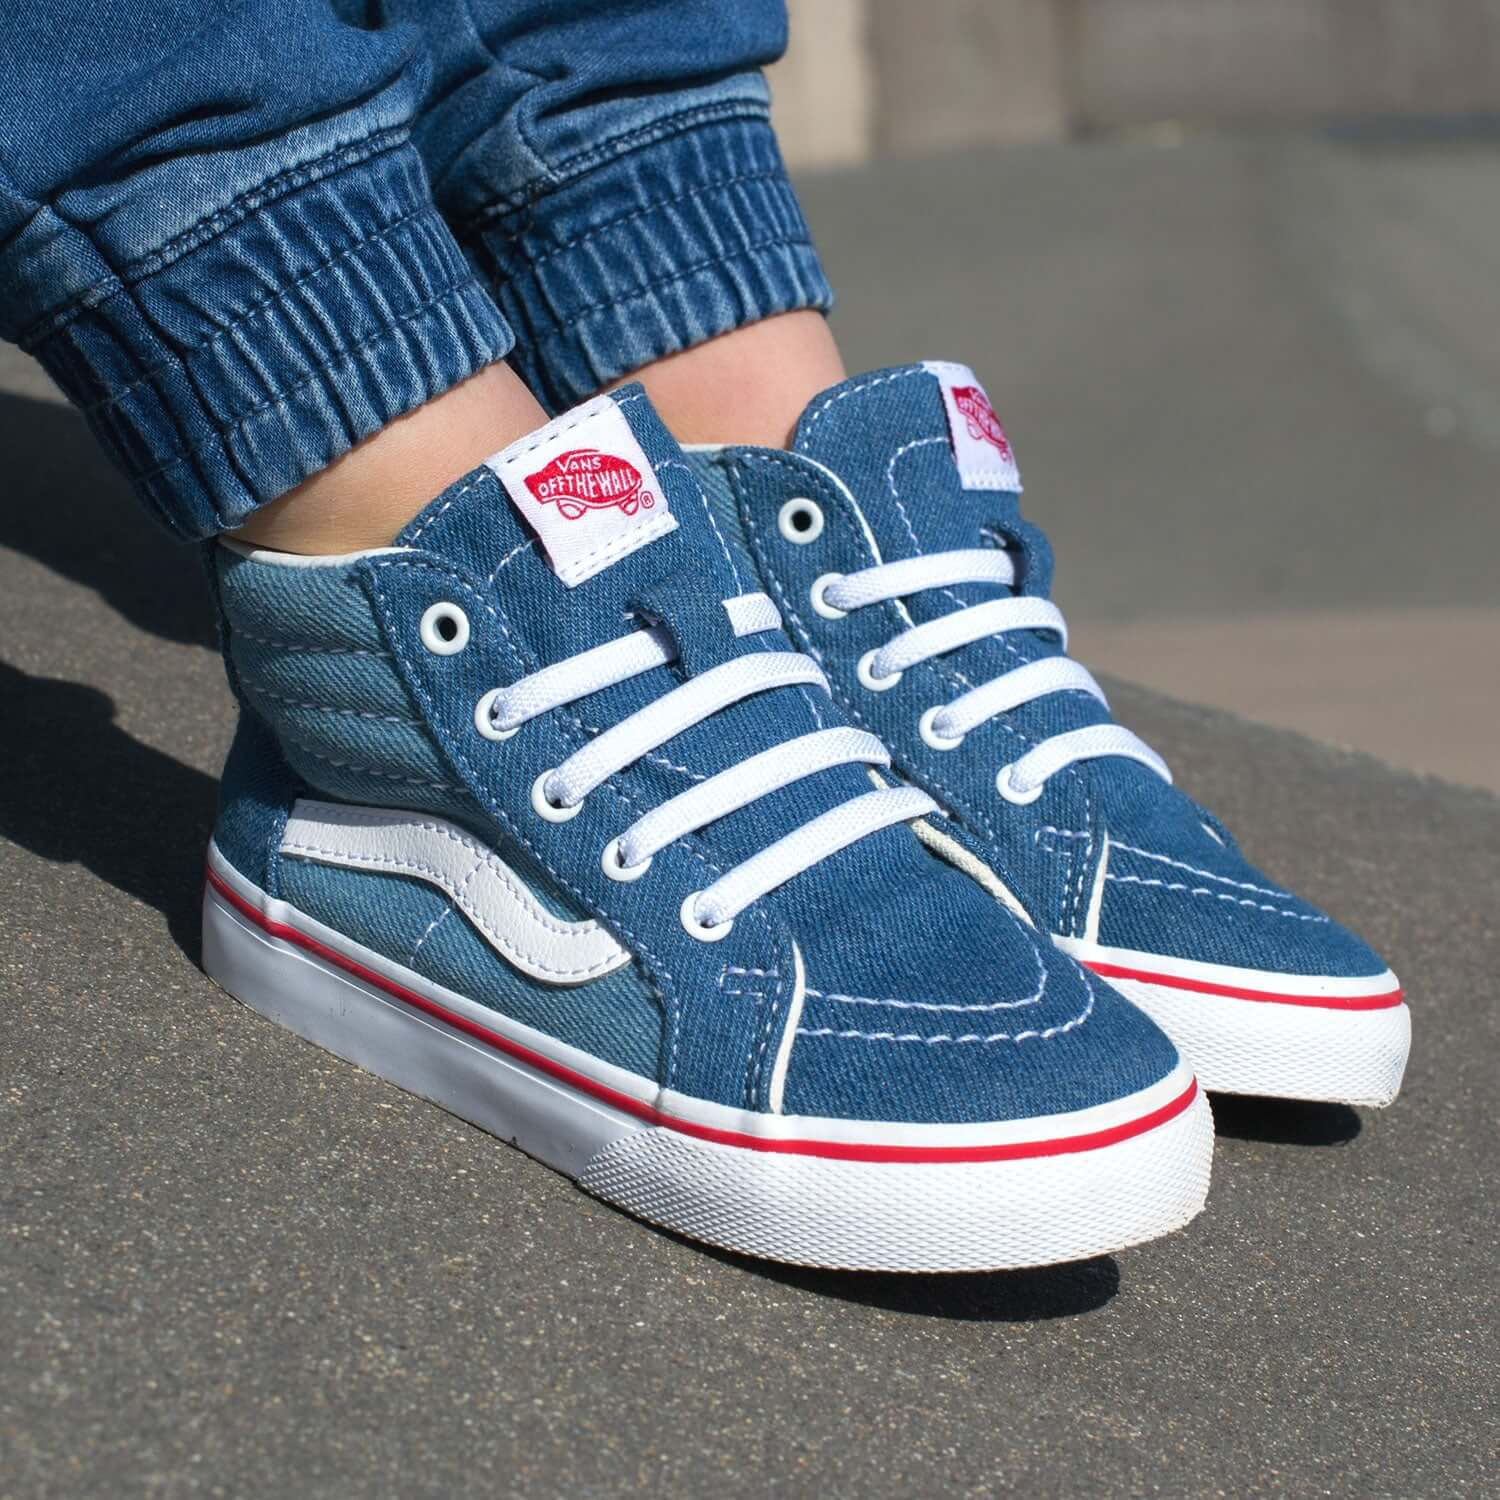 Vans Kids SK8-Hi Zip Sneaker – Denim 2 Tone side